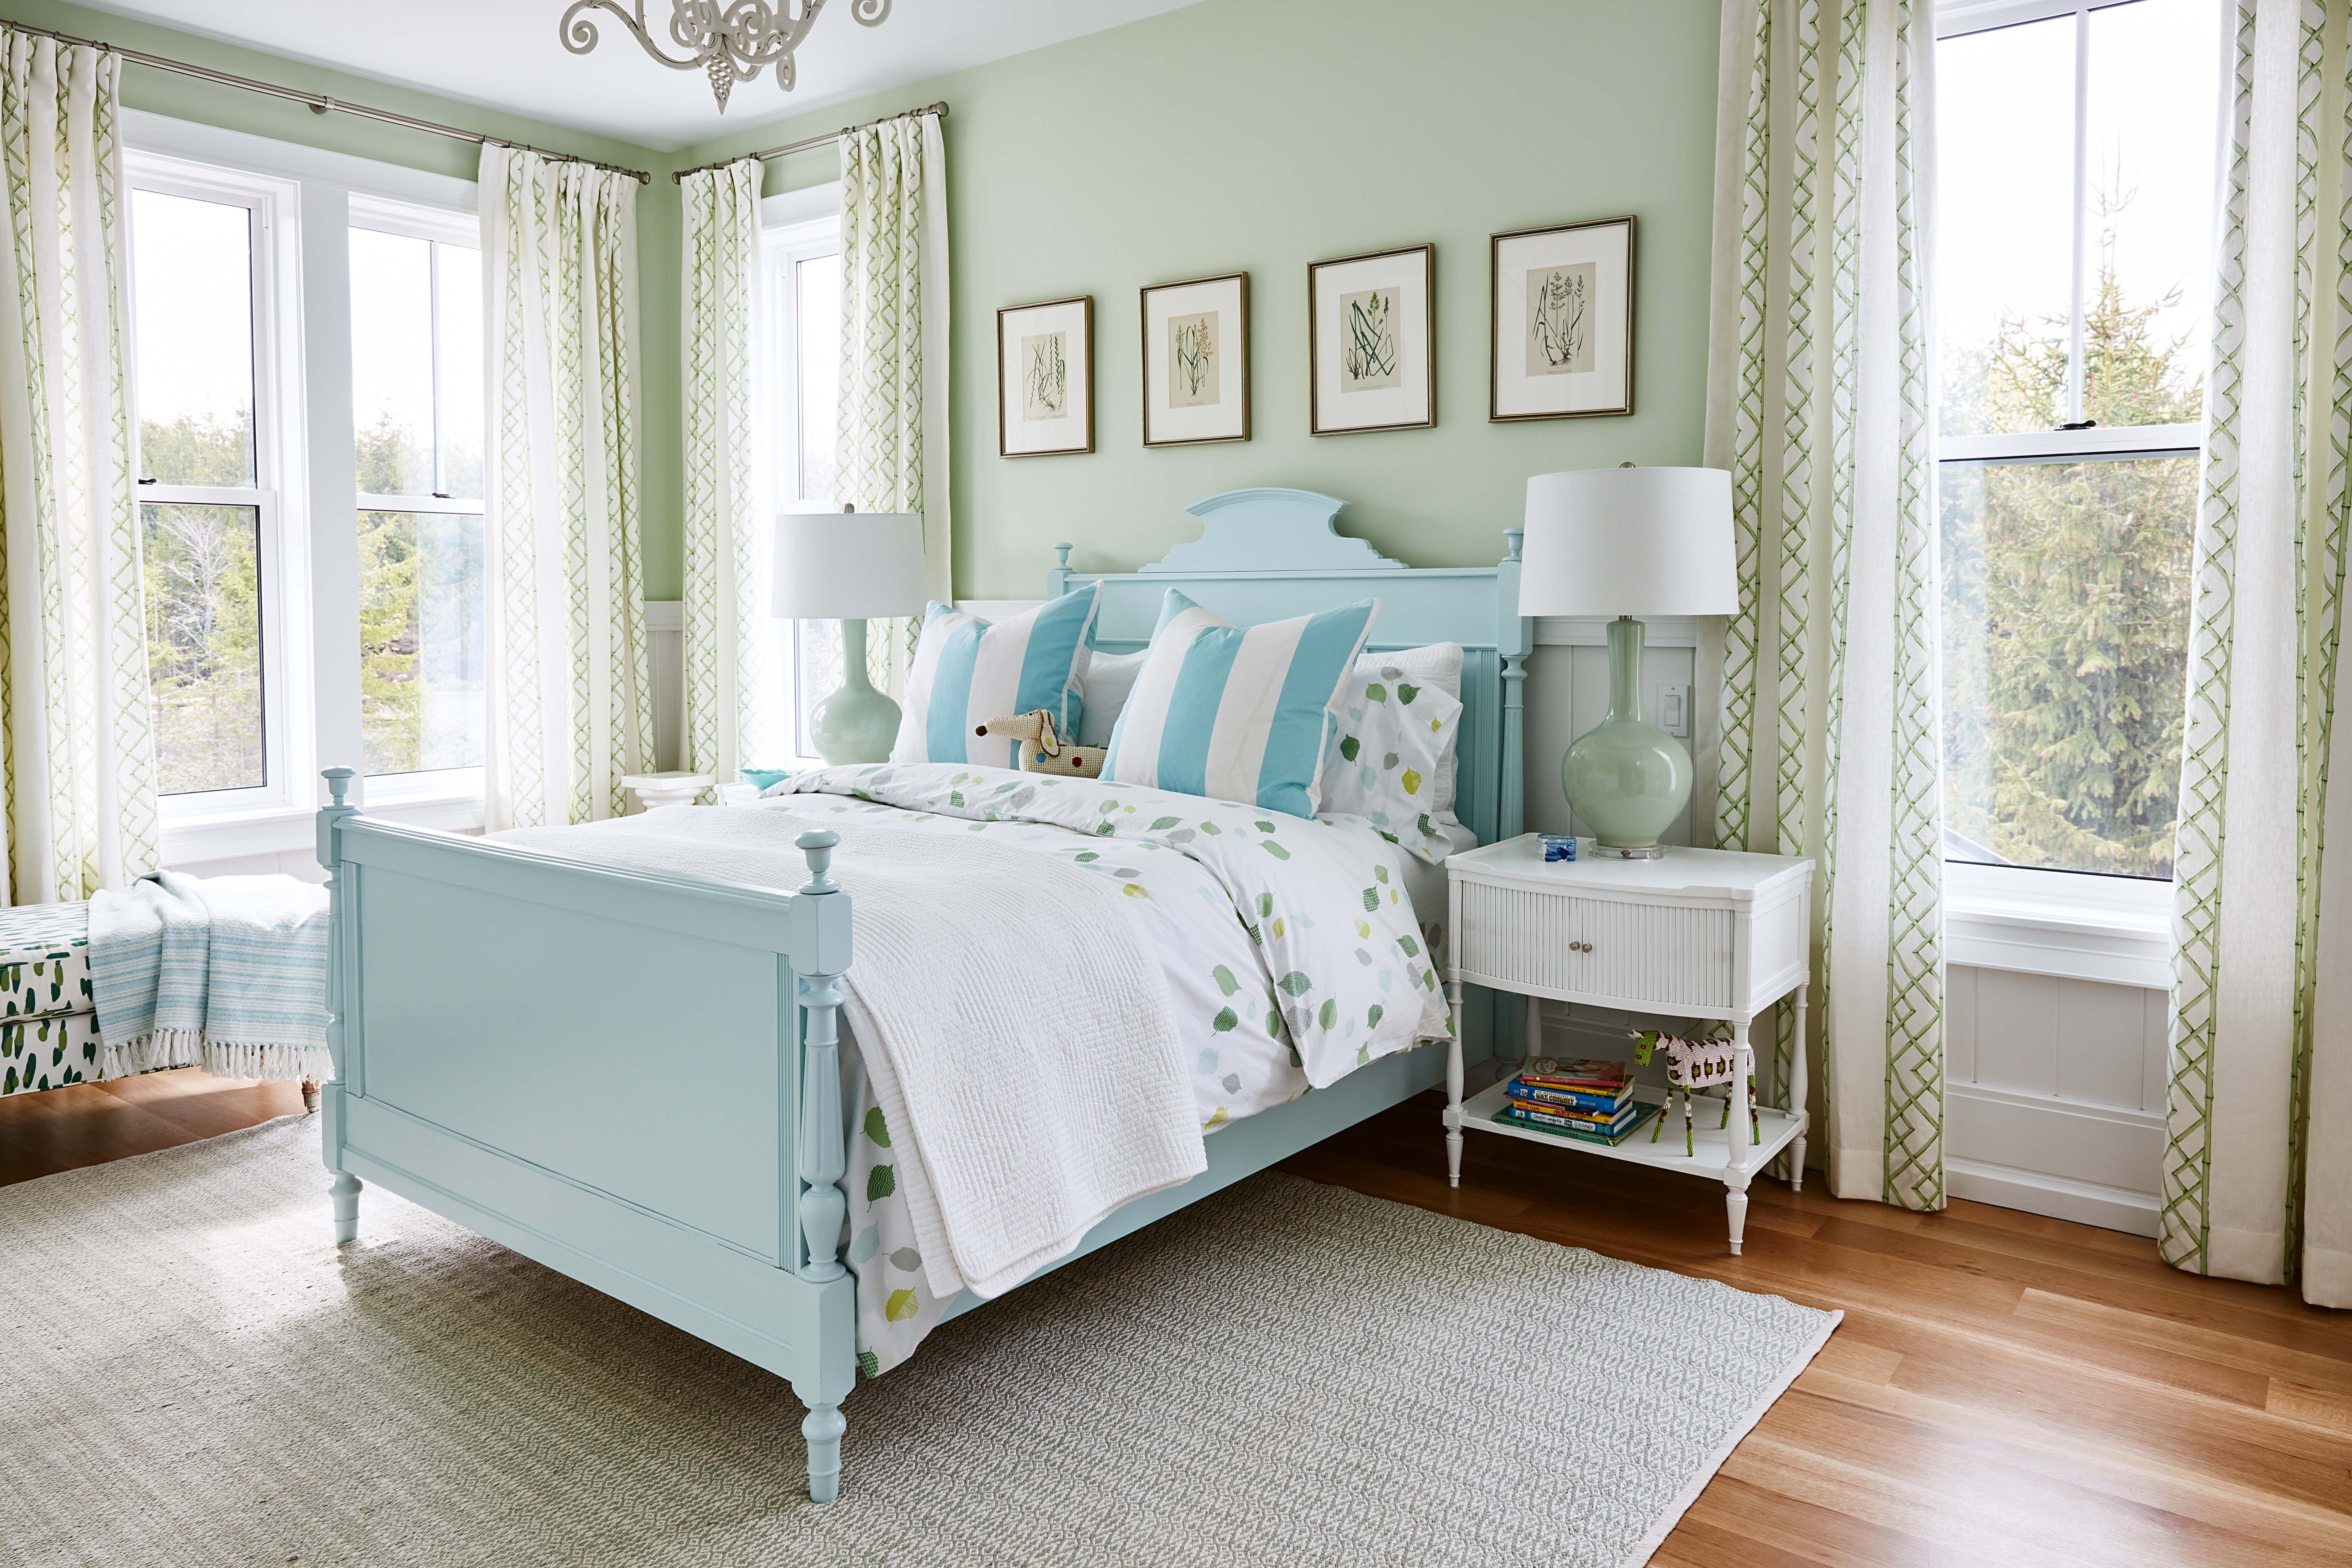 Tiffany blue and green cottage style bedroom by #SarahRichardson. #tiffanyblue #turquoisebed #greenwalls